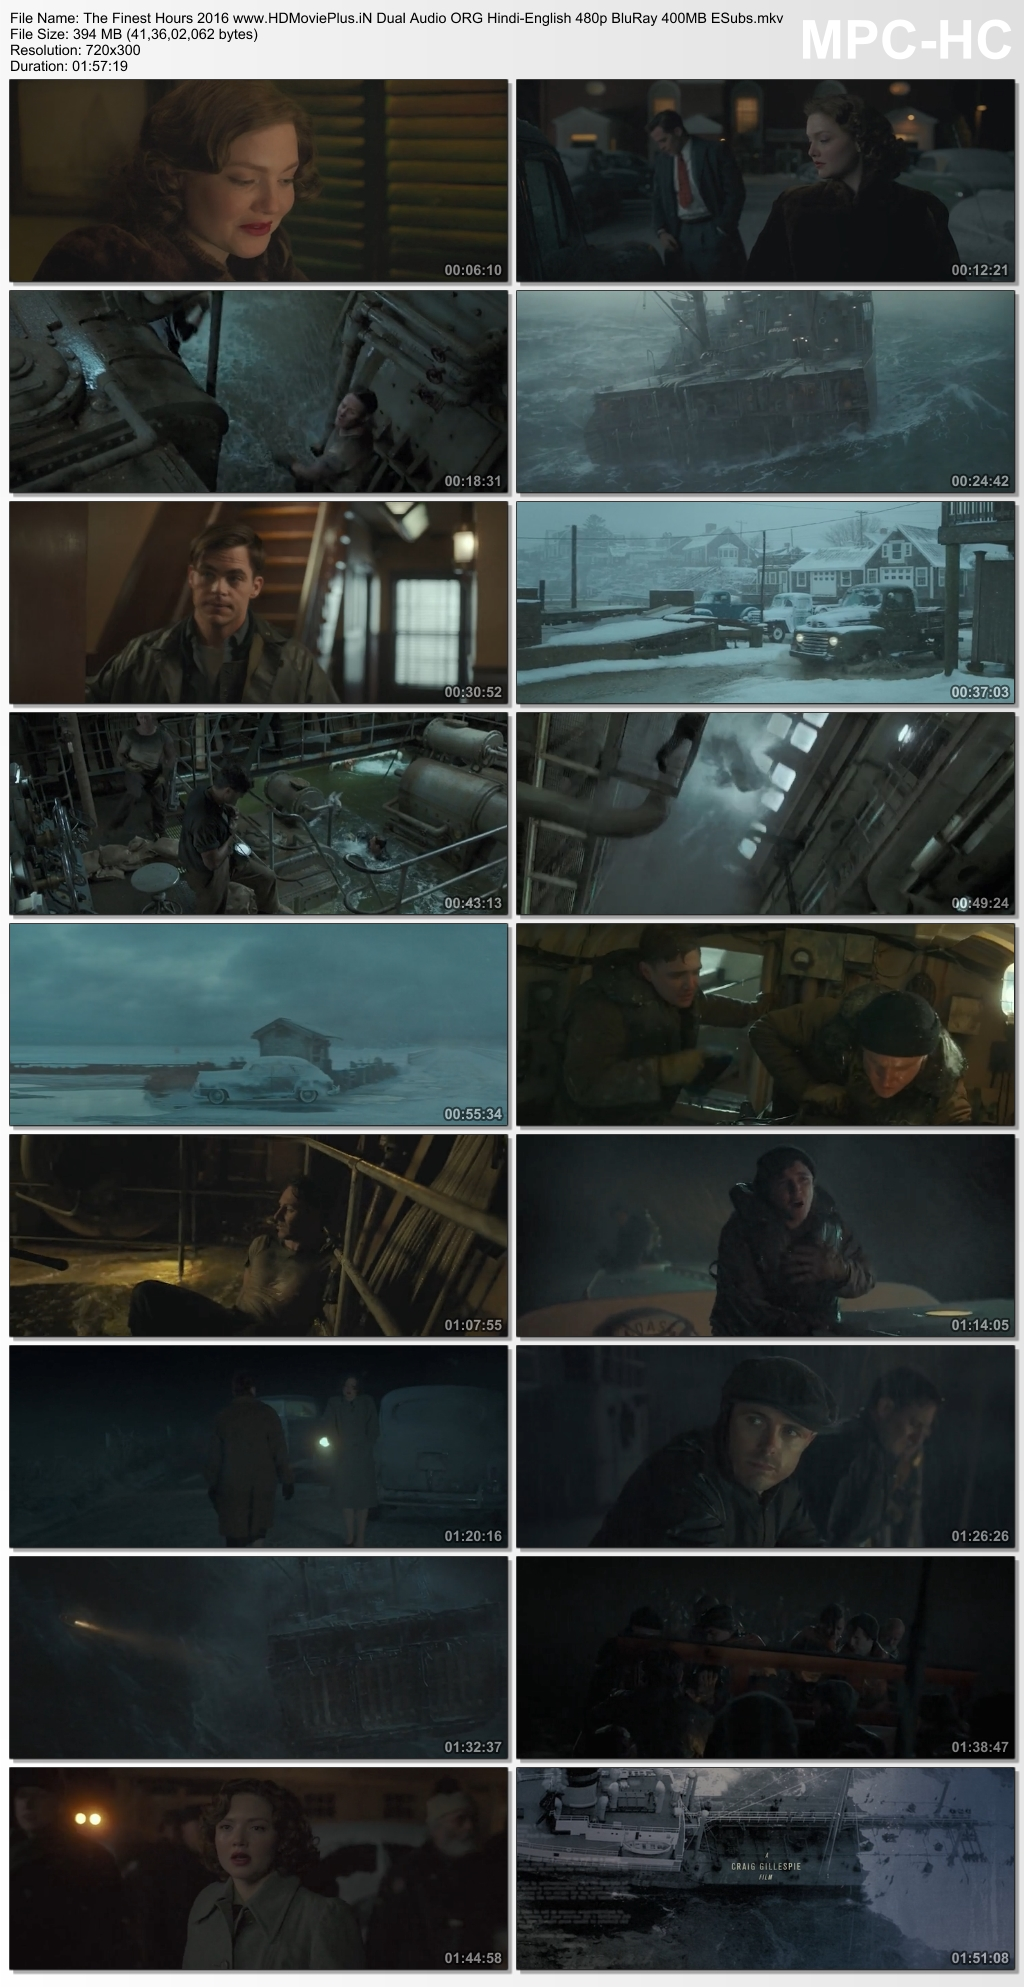 The Finest Hours 2016 Dual Audio